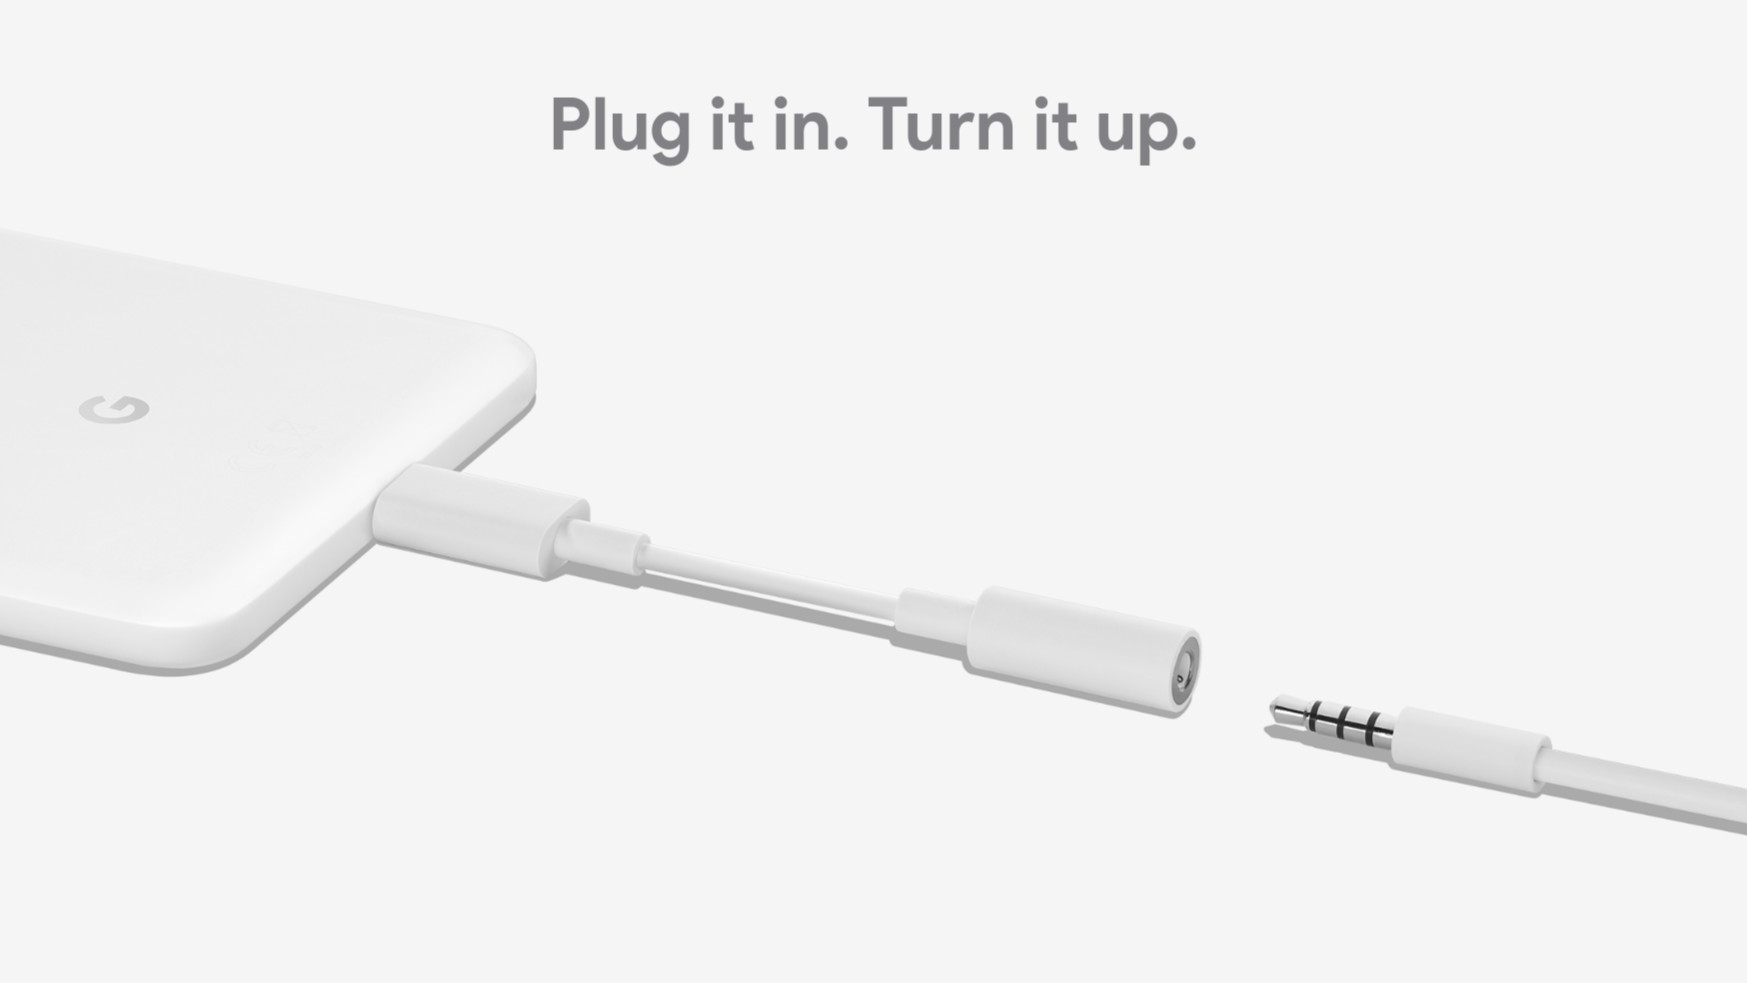 Google wants to charge you £3 more for a slightly improved dongle